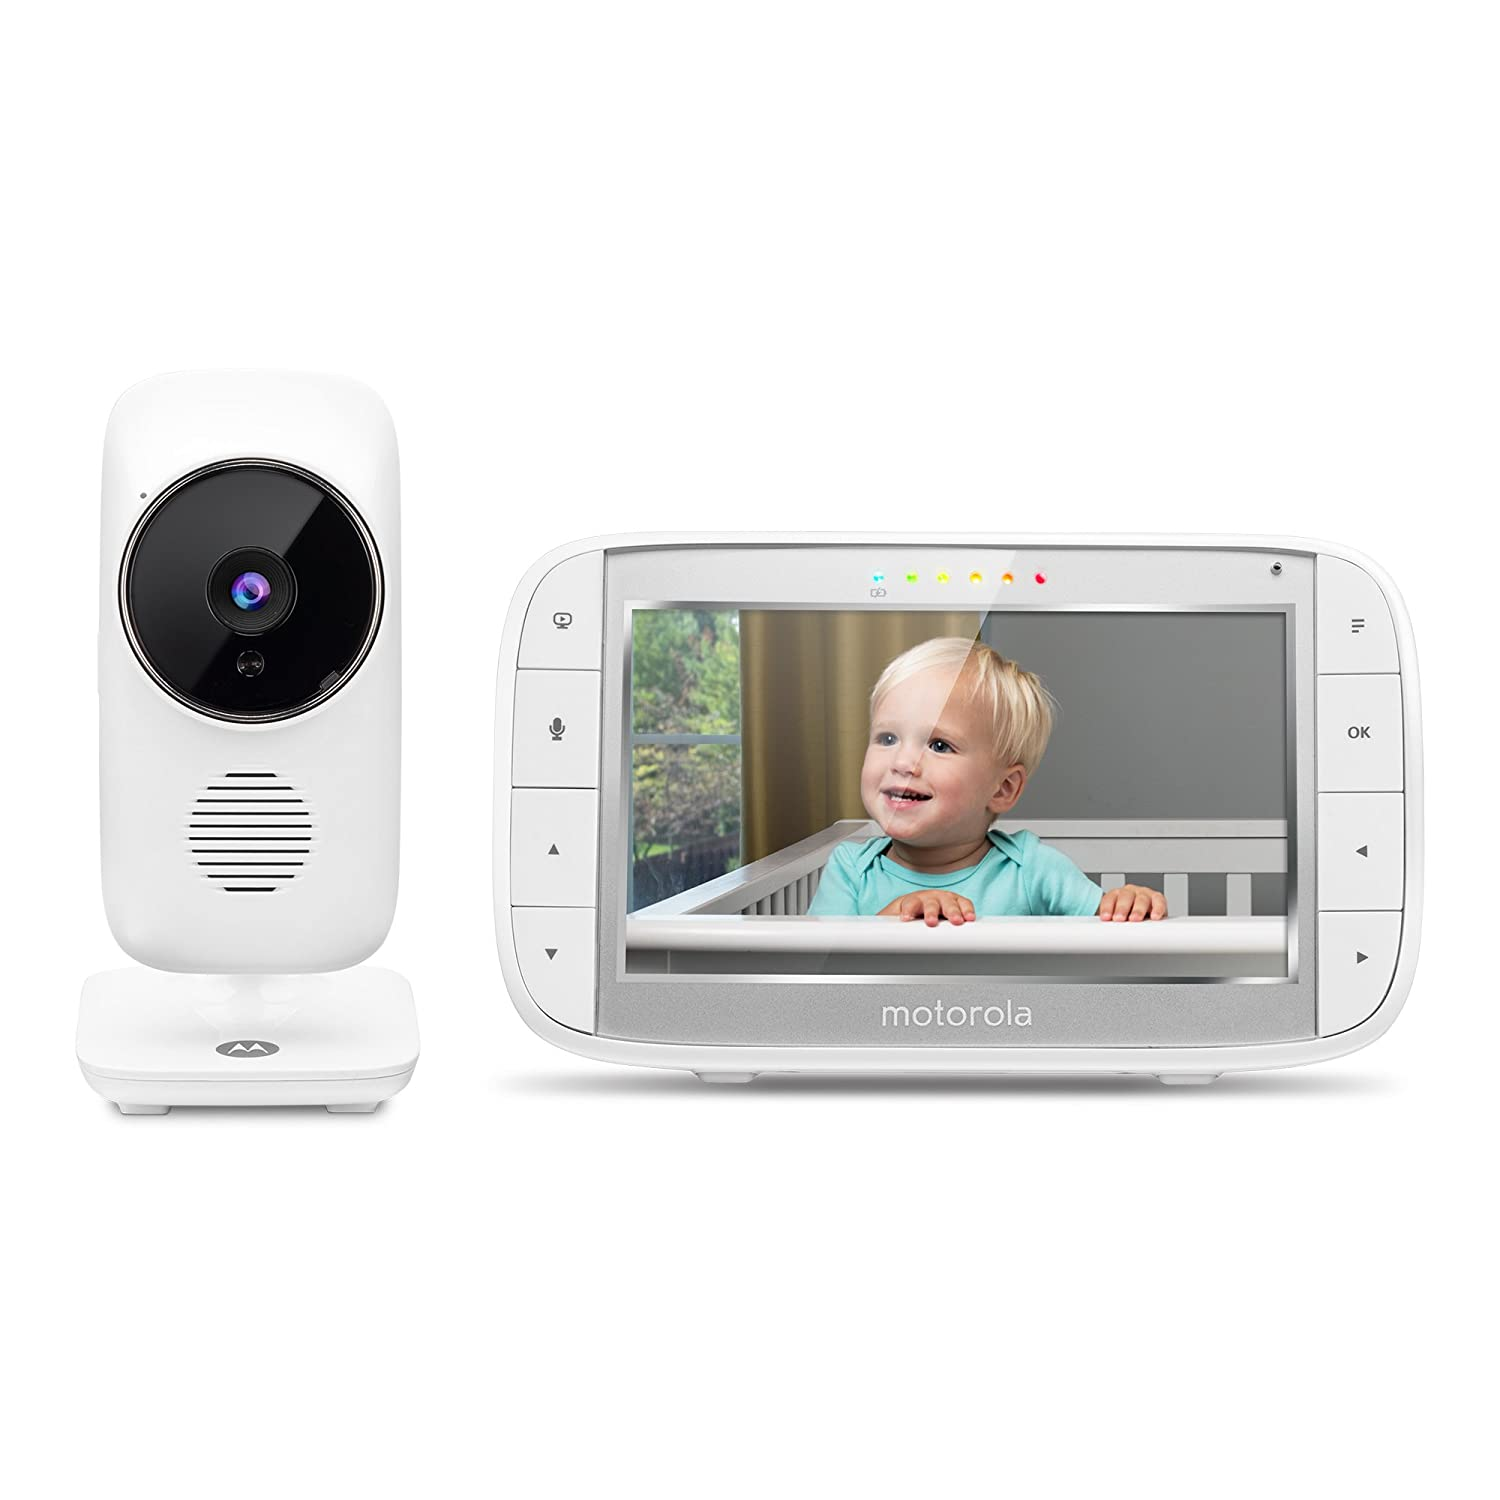 Motorola MBP48 Digital Video Audio Baby Monitor with 5 Color Screen